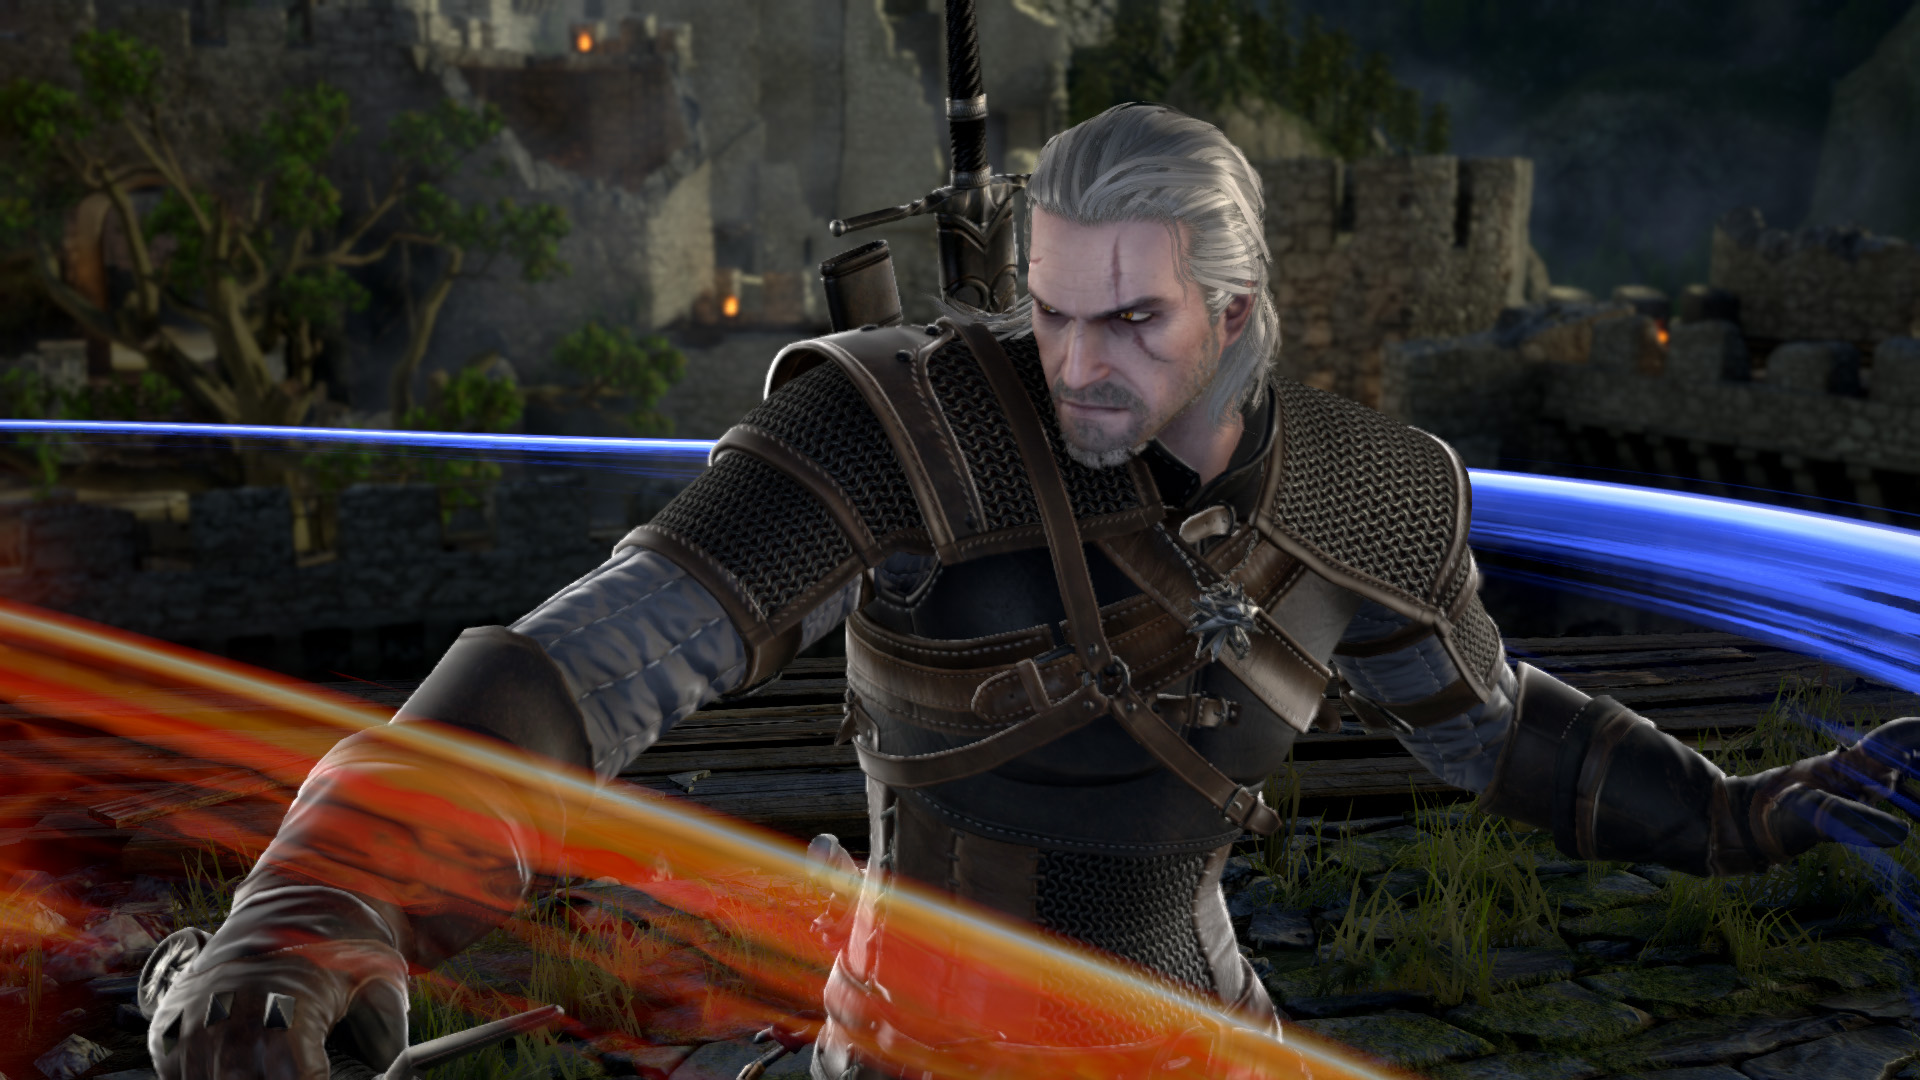 All Games Delta: Soulcalibur VI Adds Geralt of Rivia from